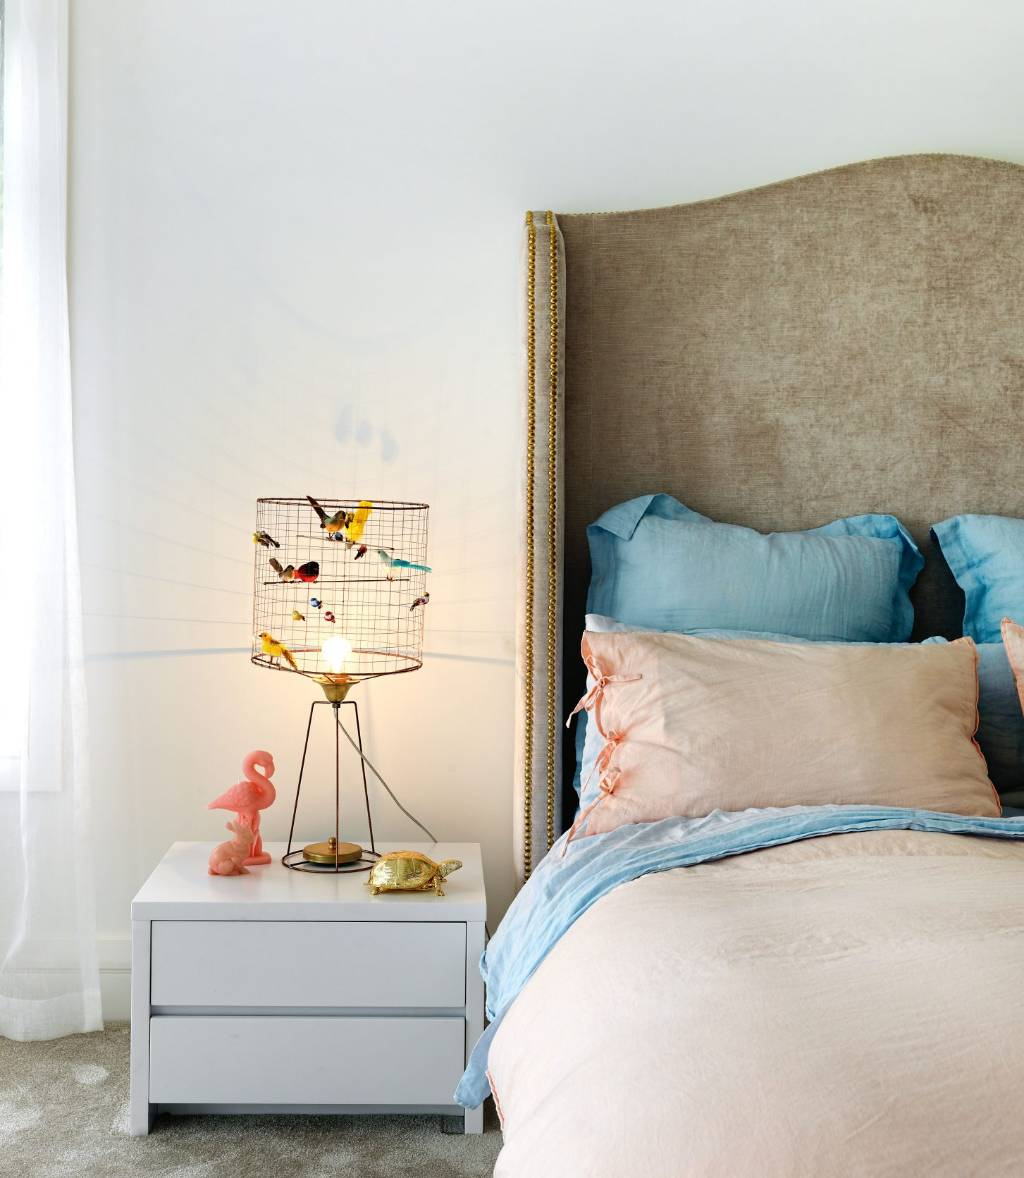 Bedroom Furniture Auckland: Do's And Dont's Of Selecting Headboards